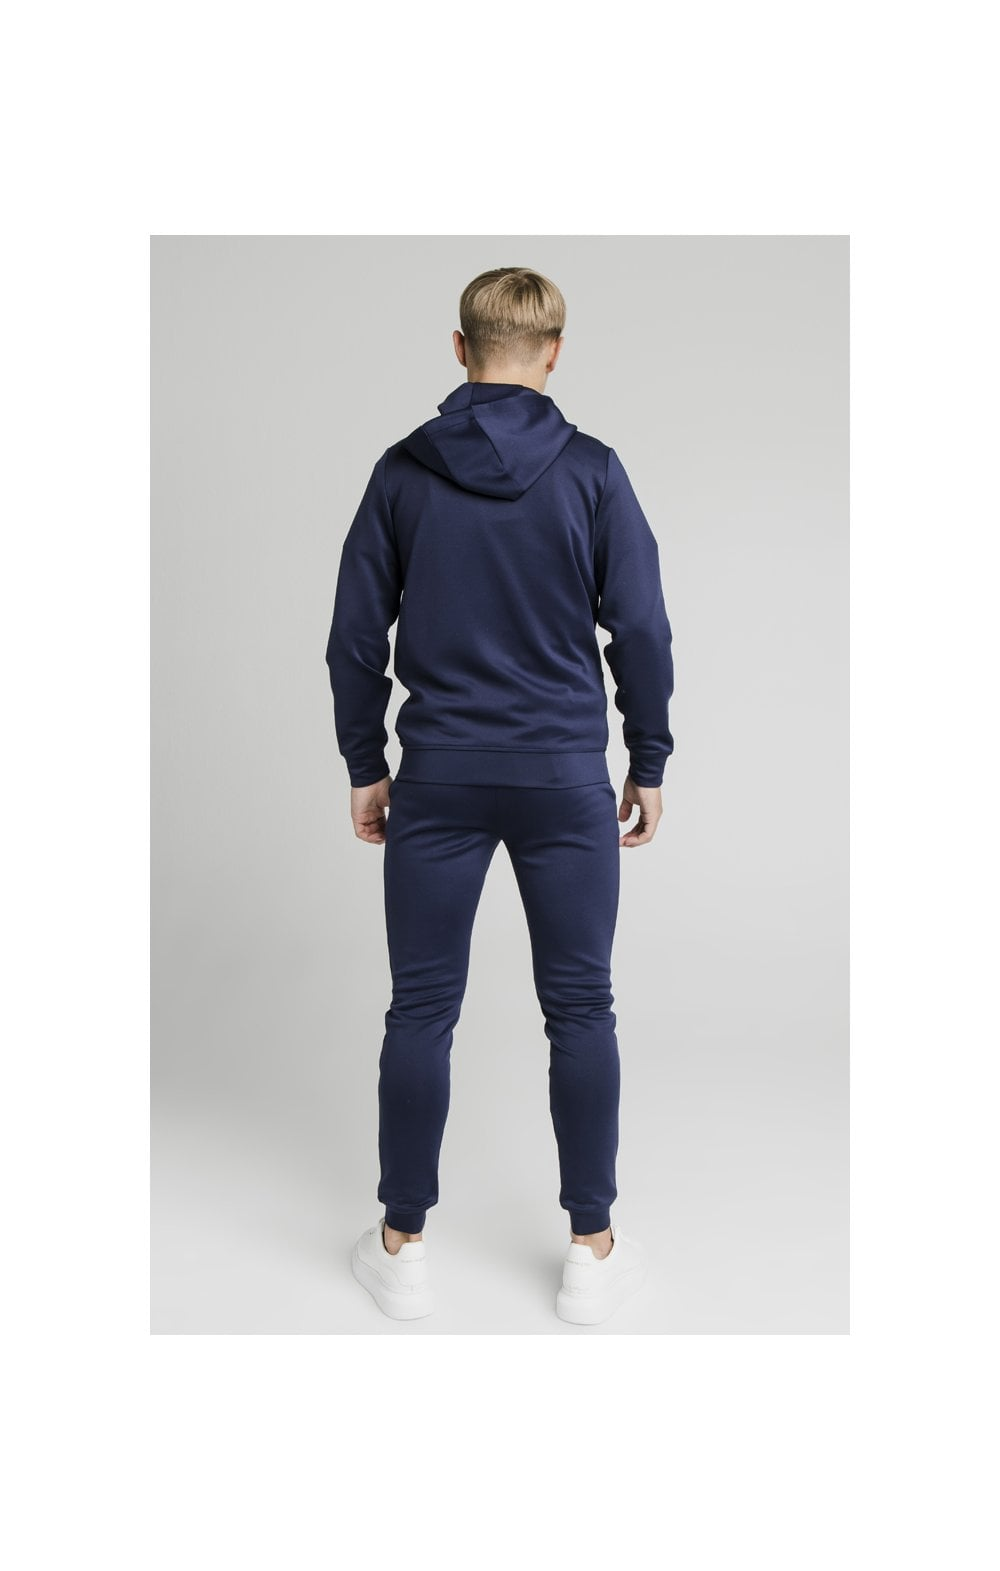 Illusive London Central Tape Zip Through Hoodie - Navy (7)